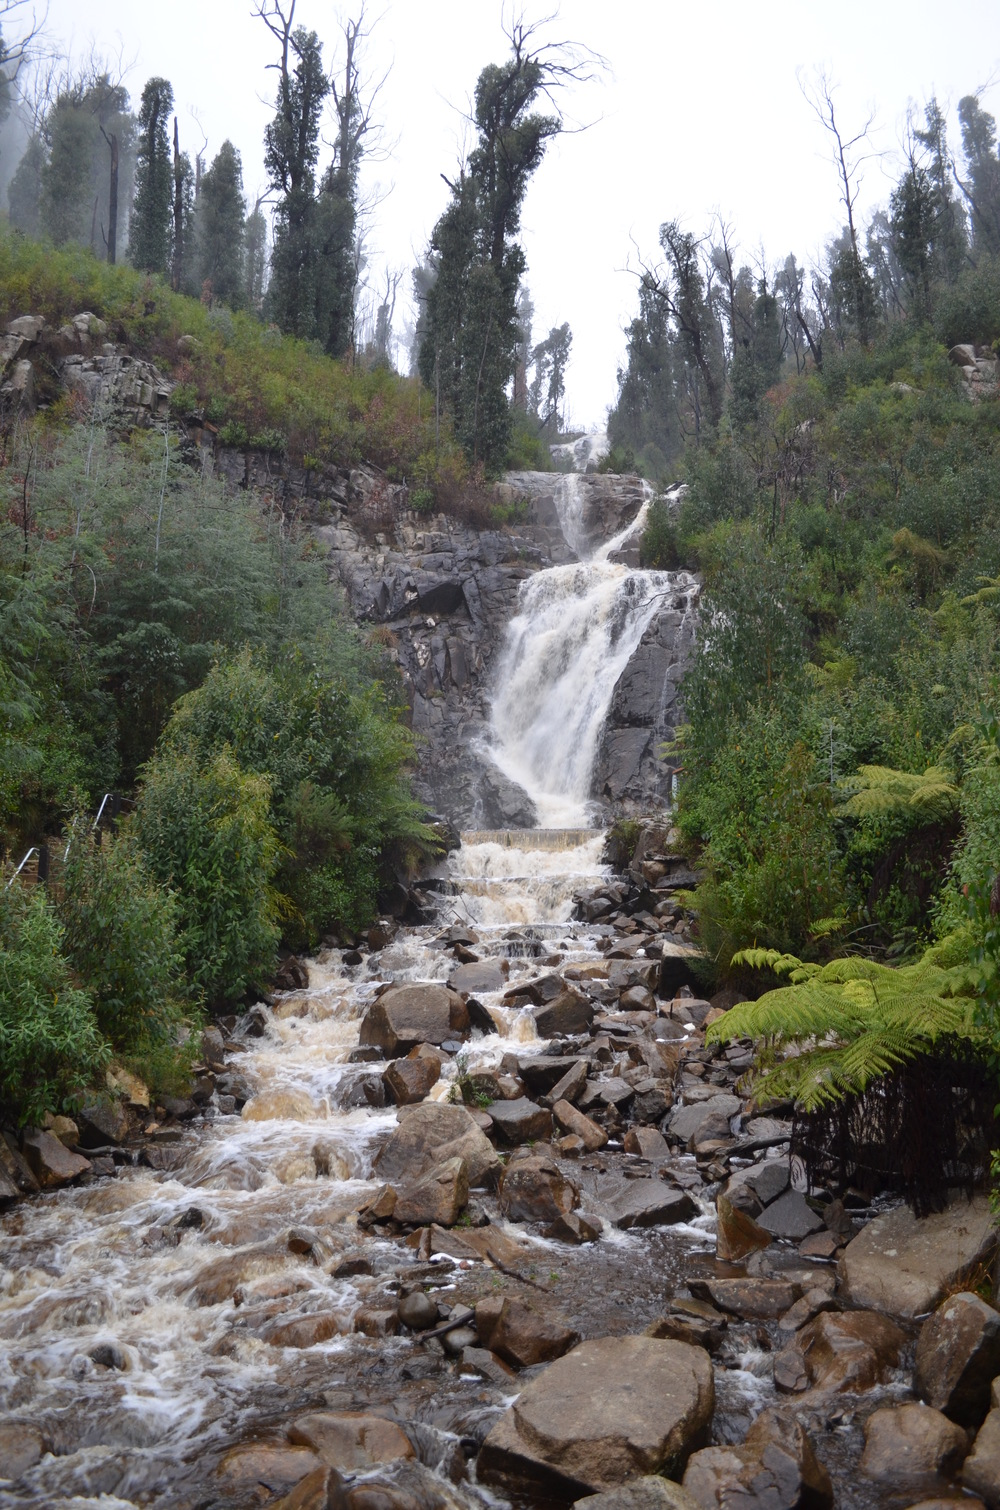 The famous Steavenson Falls - beautiful and serene.